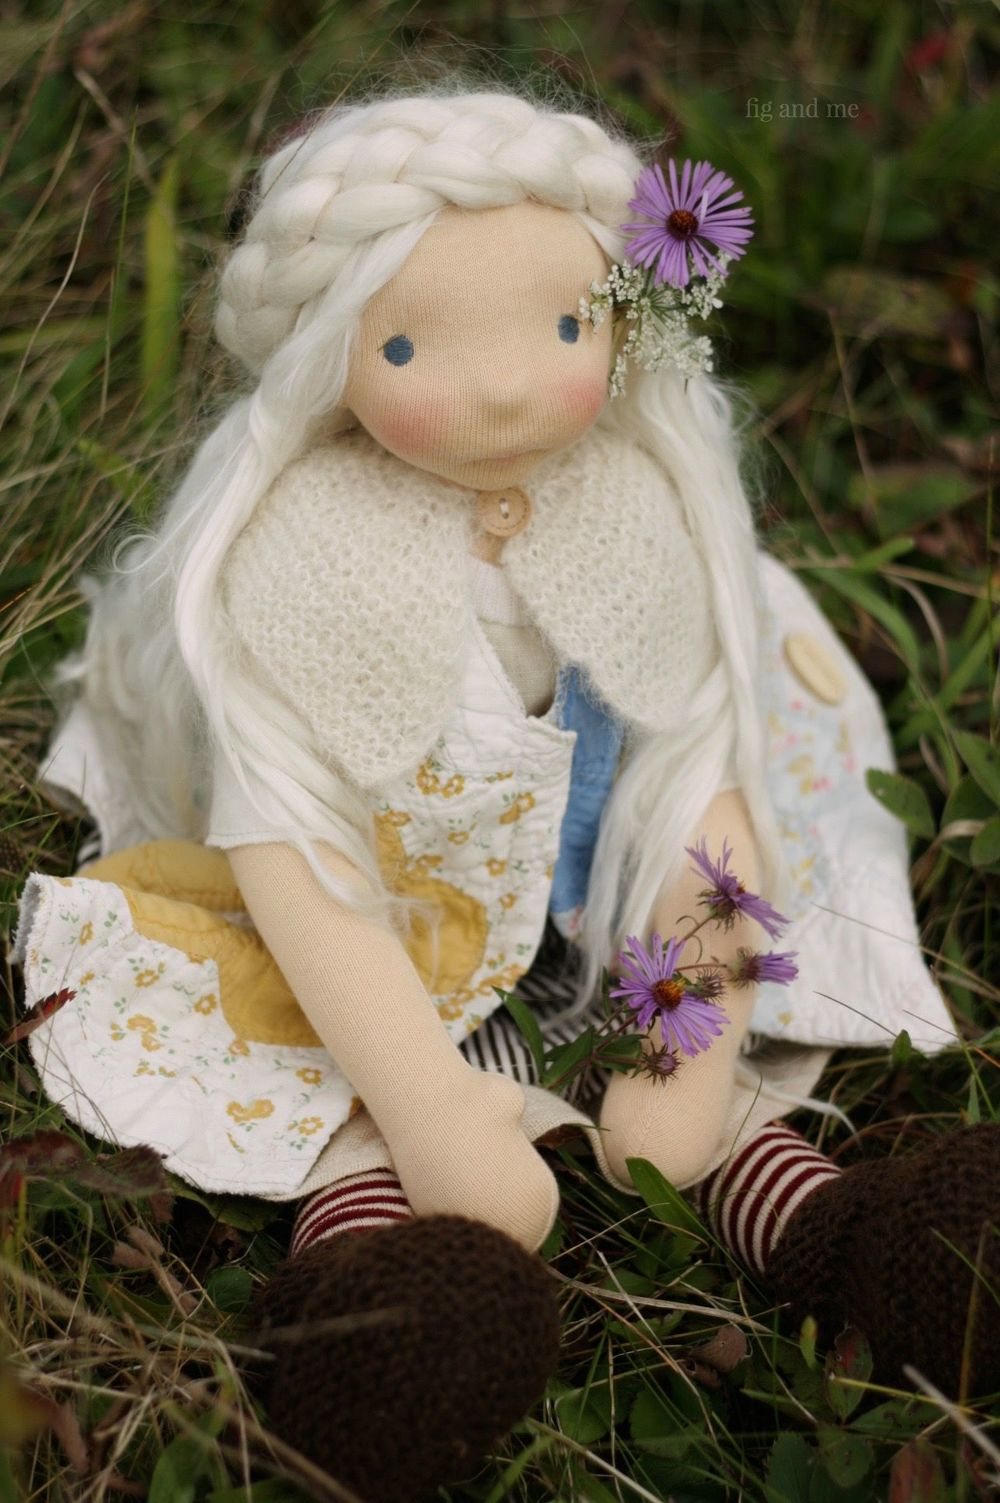 Feodora, a natural fiber art doll by Fig and me.